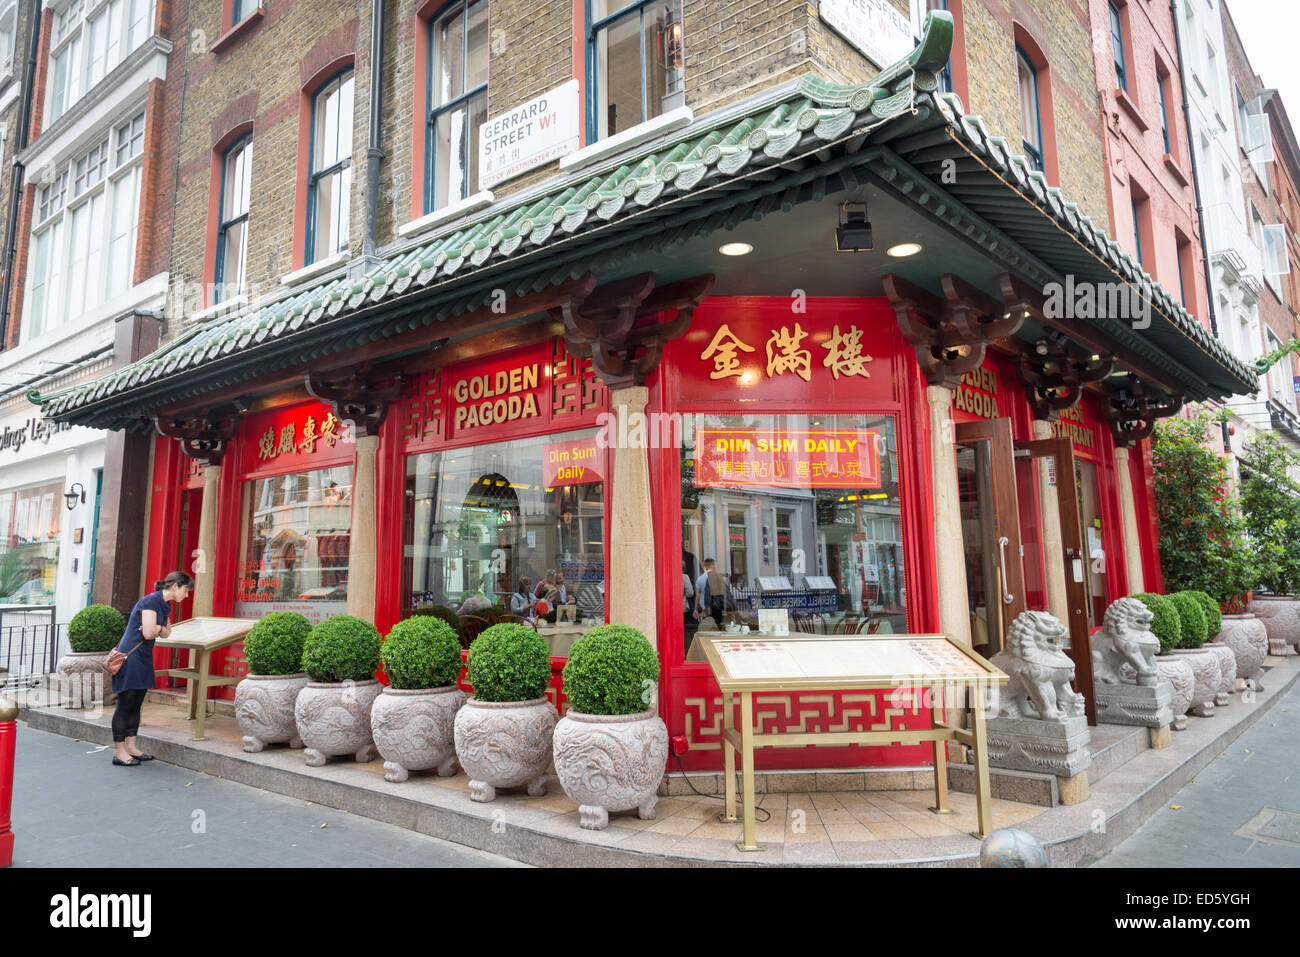 golden pagoda chinese restaurant in gerrard street chinatown stock photo royalty free image. Black Bedroom Furniture Sets. Home Design Ideas